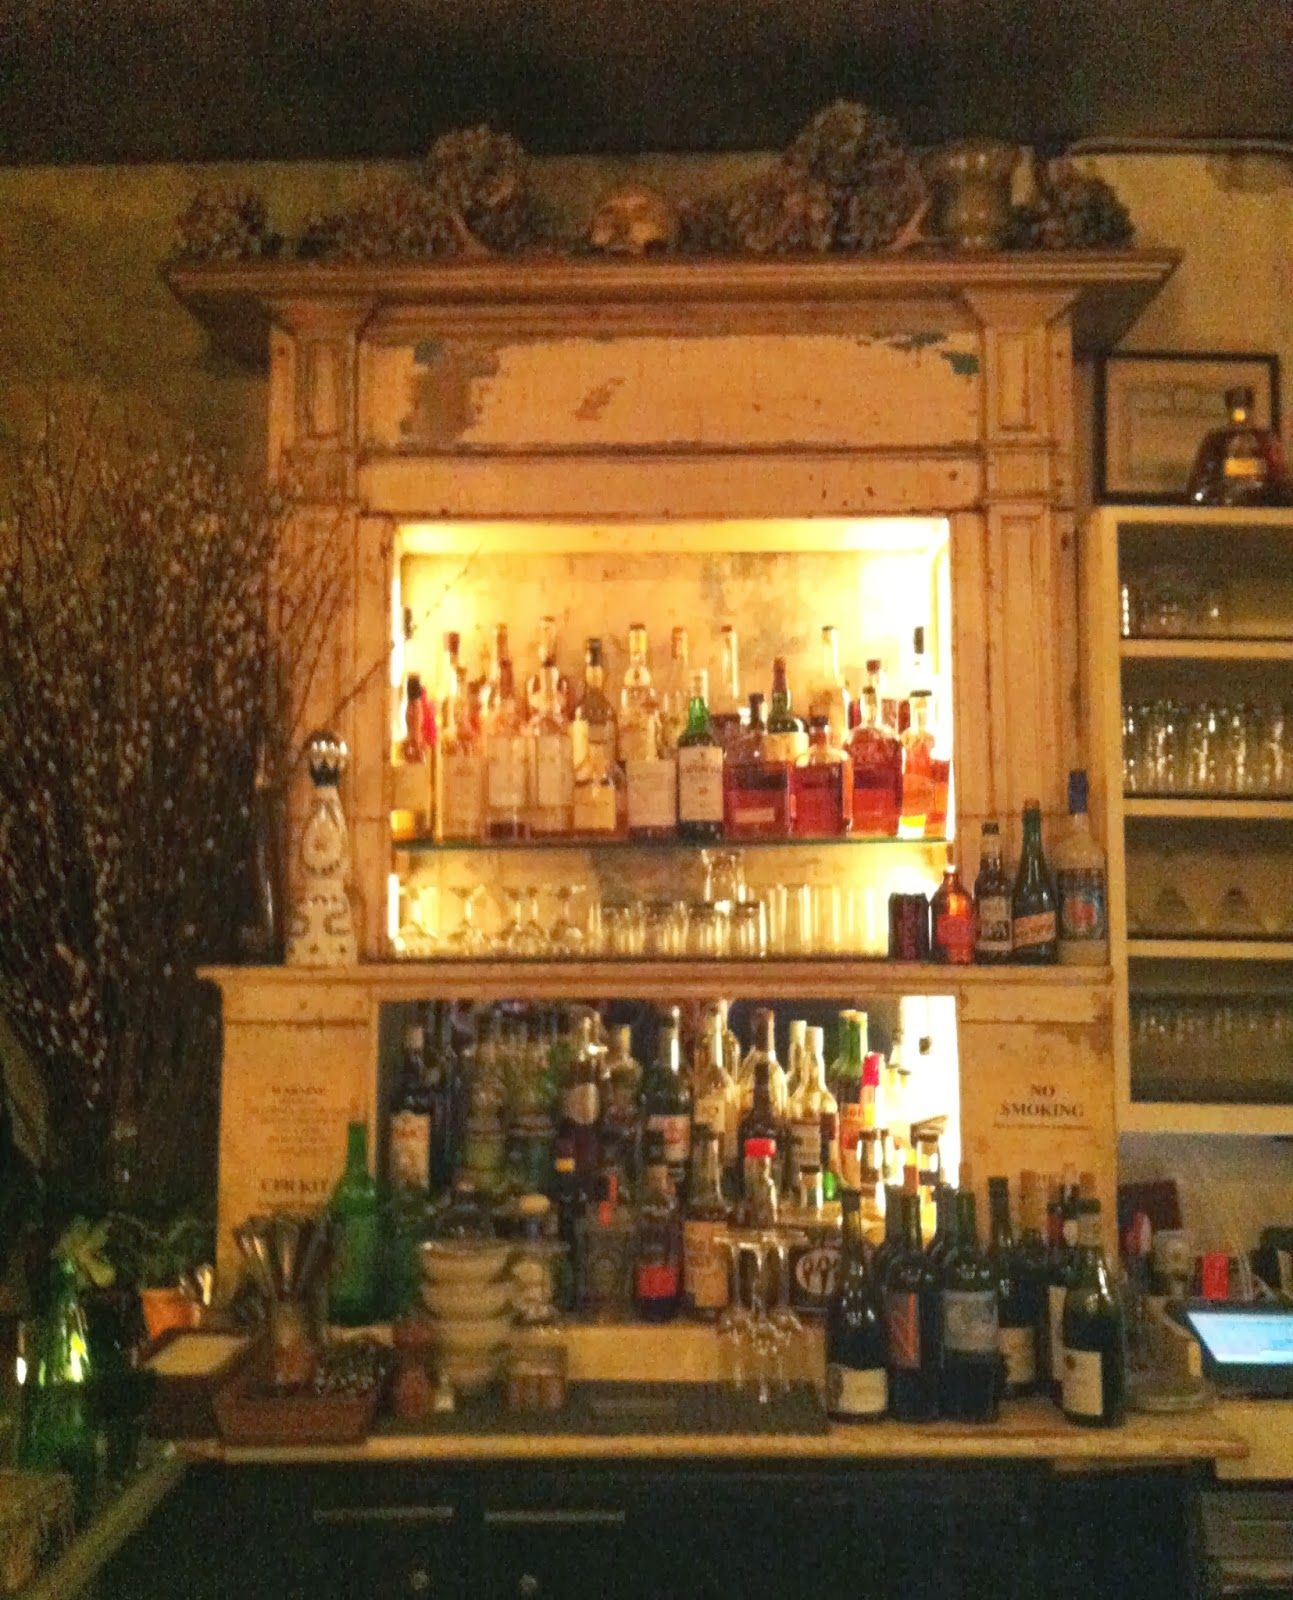 Weathered Bar, This Looks Like An Old Fireplace, Lit Up